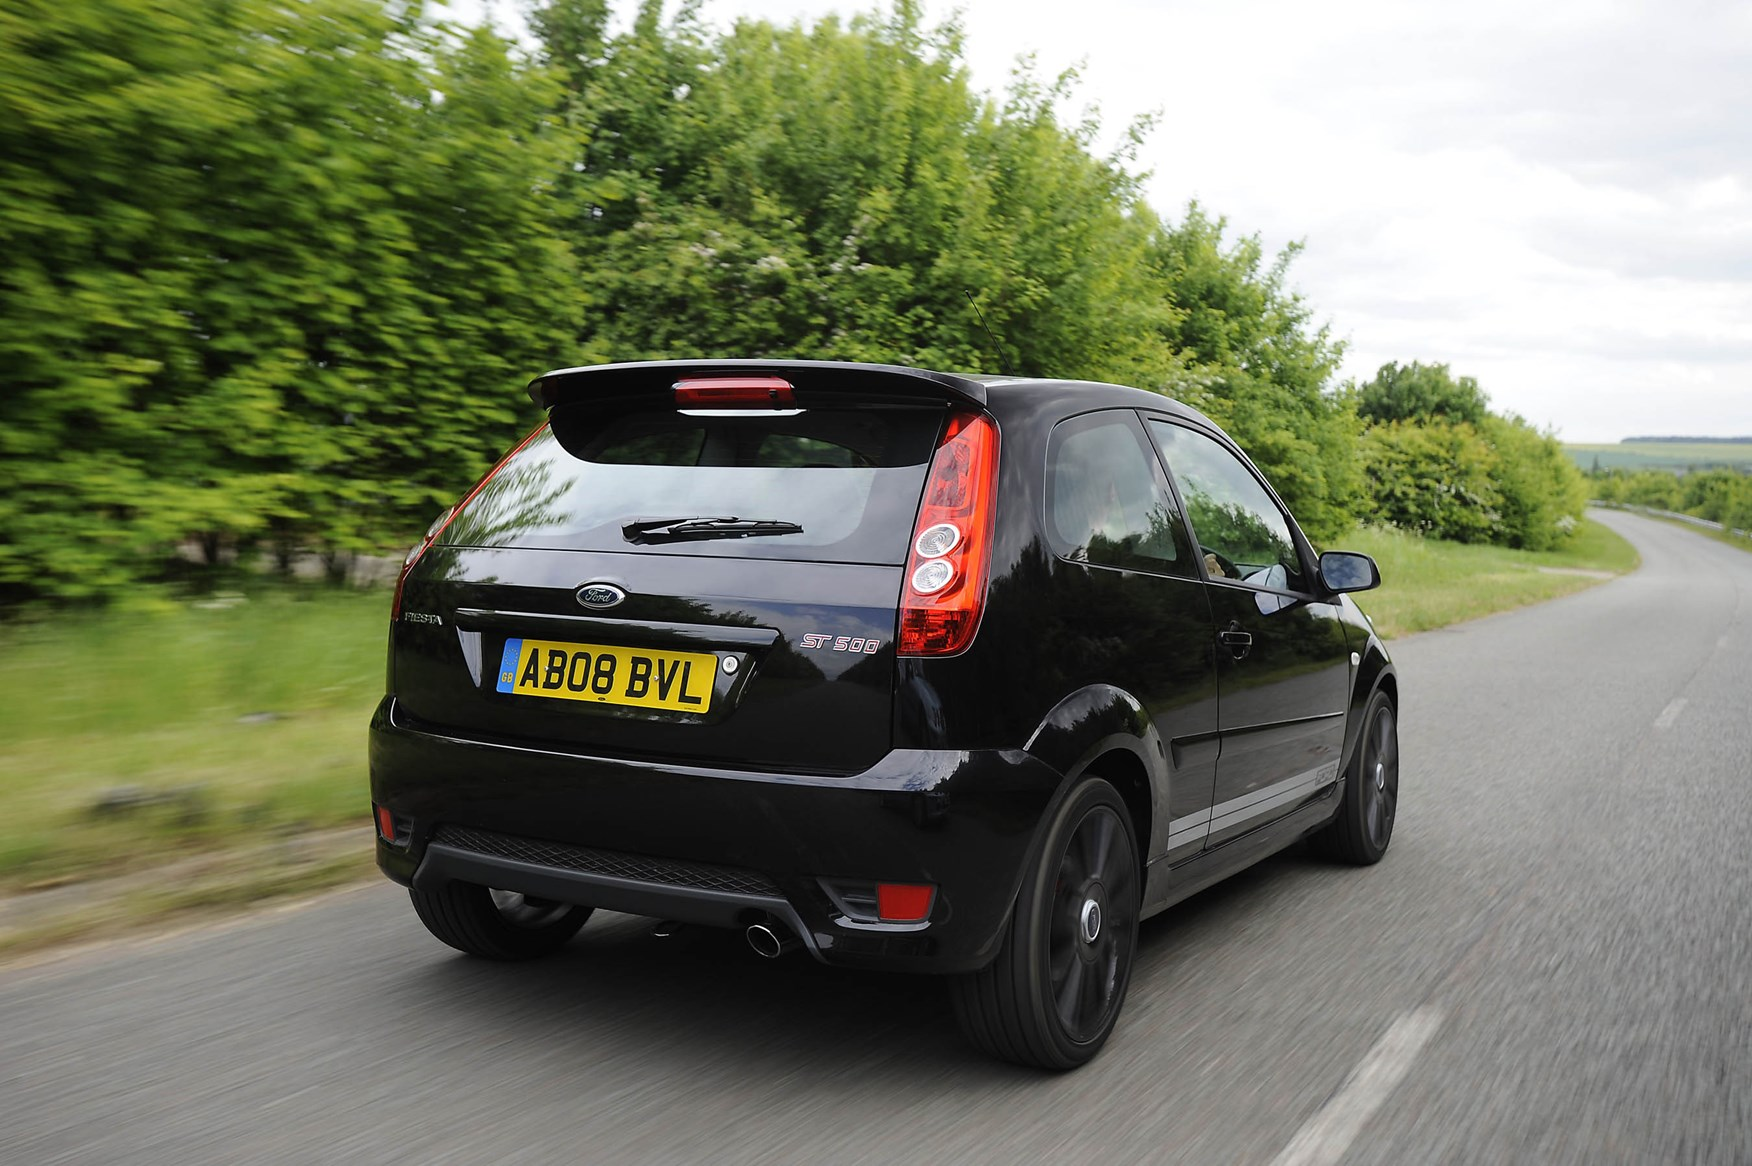 View all images of the ford fiesta st 05 08